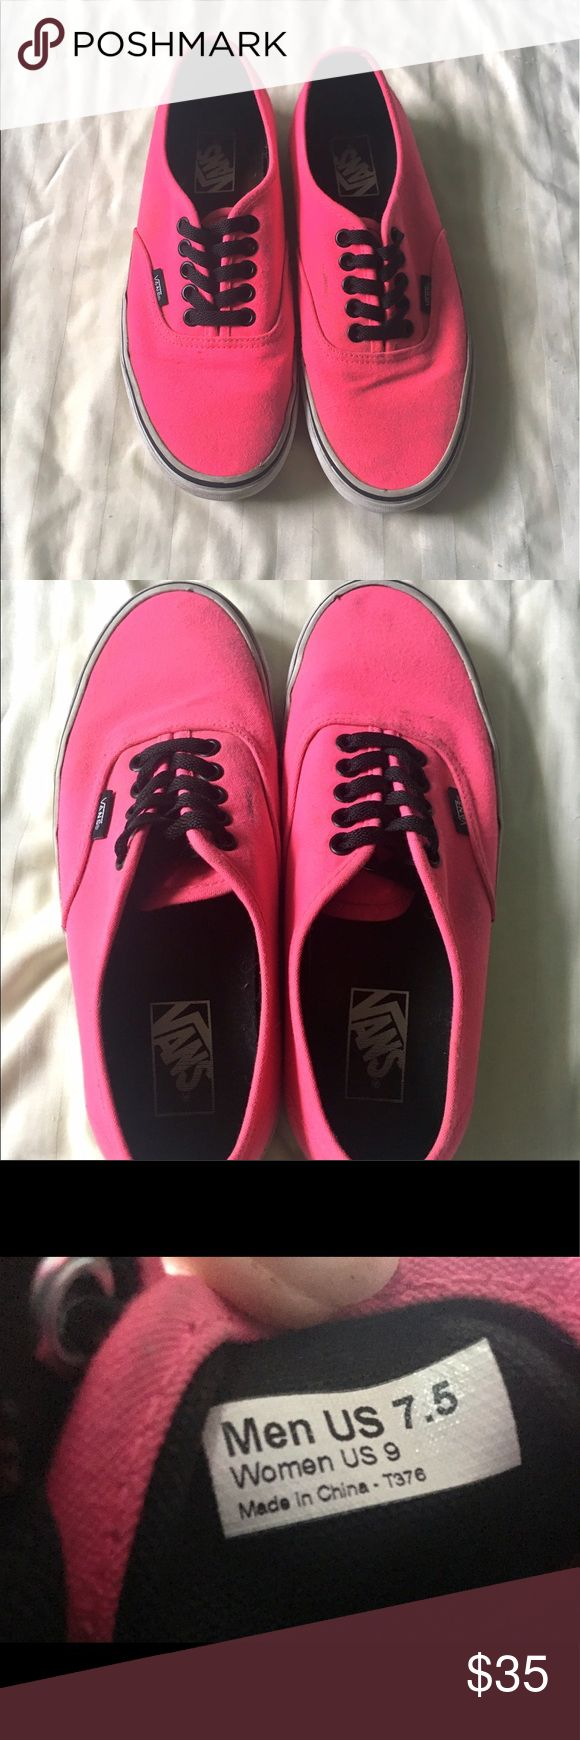 Hot Pink Vans Authentic Skate Shoes •Hot Pink Vans •Thick sole •Lightly worn •Minor staining on the pink but can be cleaned •Fits mens size 7.5 •Retails for $55 ❗️•Great to bundle with other items for a discount!! ❗️ Vans Shoes Sneakers